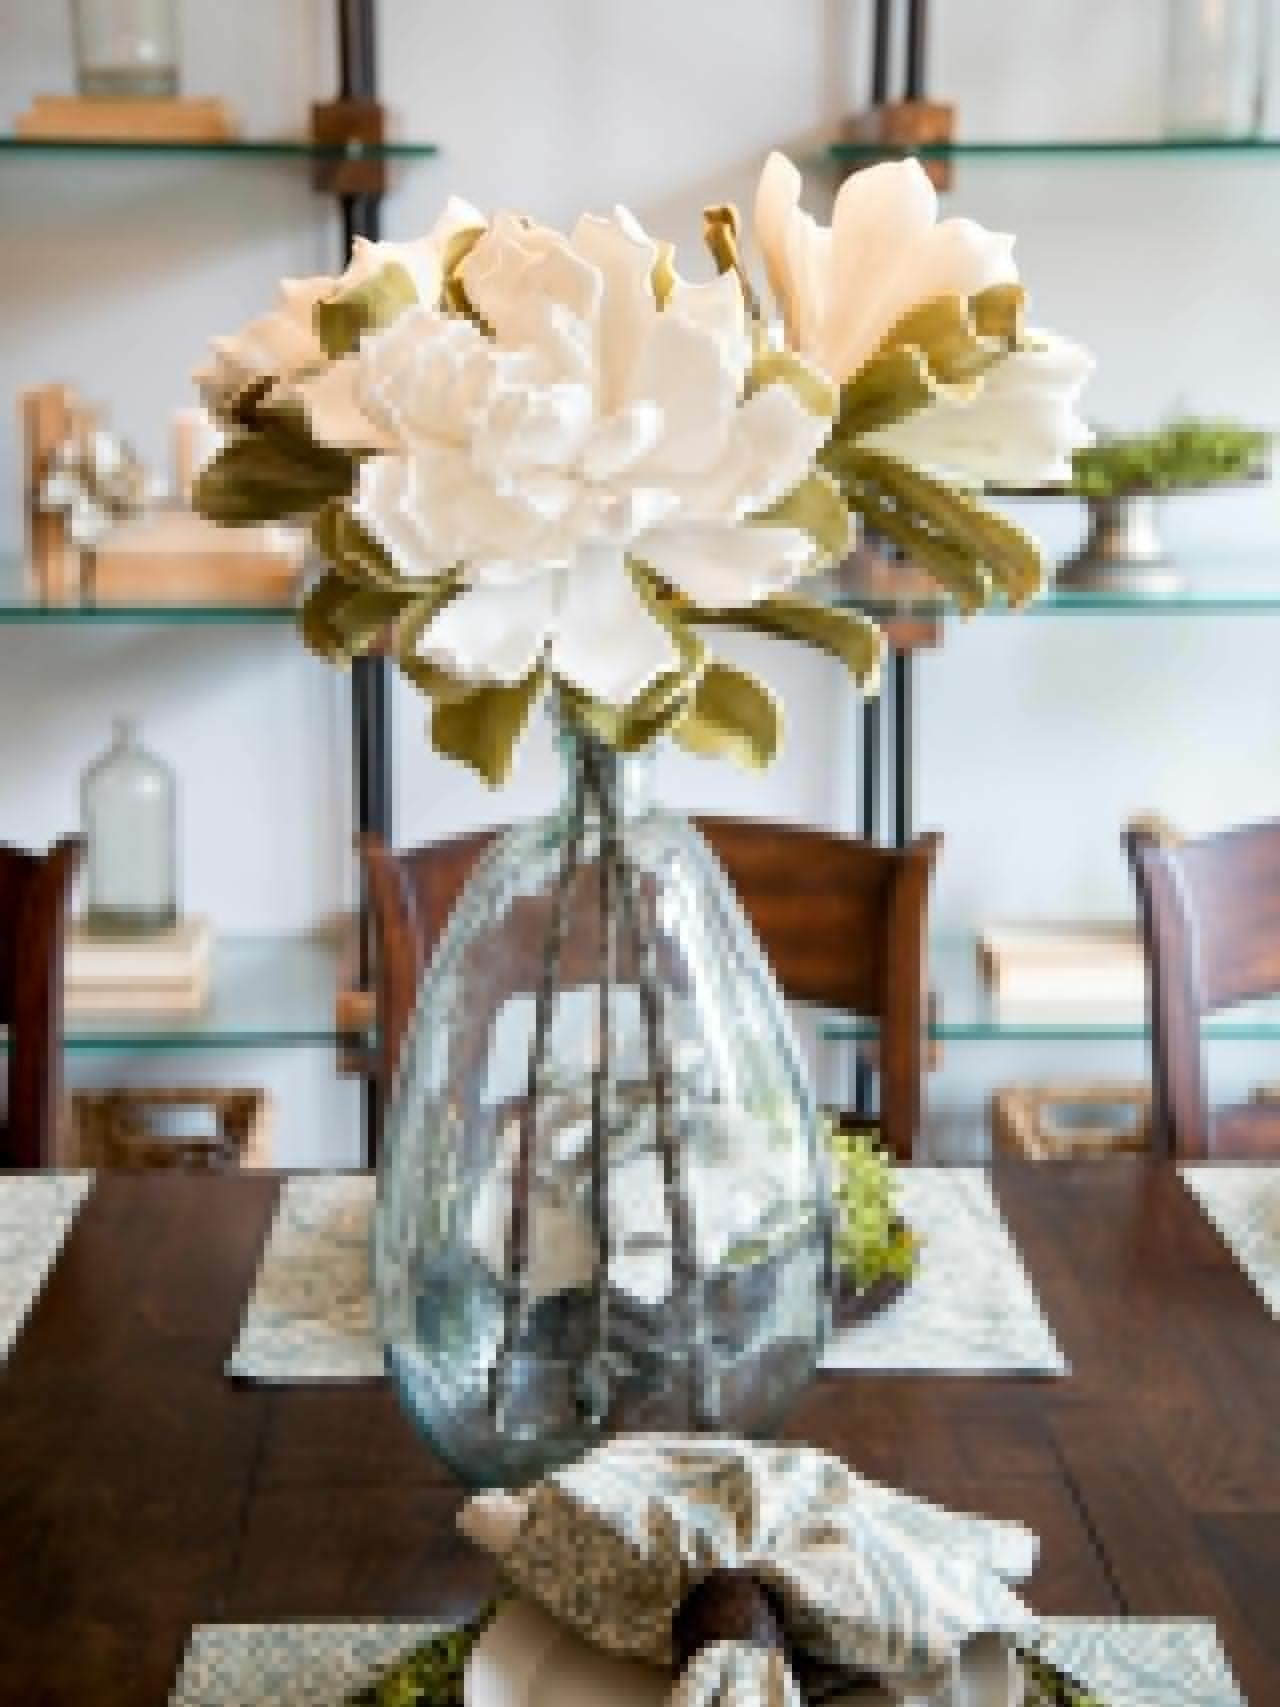 Dining Table Centerpiece Ideas Formal And Unique Dining Room Centerpiece Farmhouse Table Centerpieces Large Glass Vase Dining Room Table Centerpieces